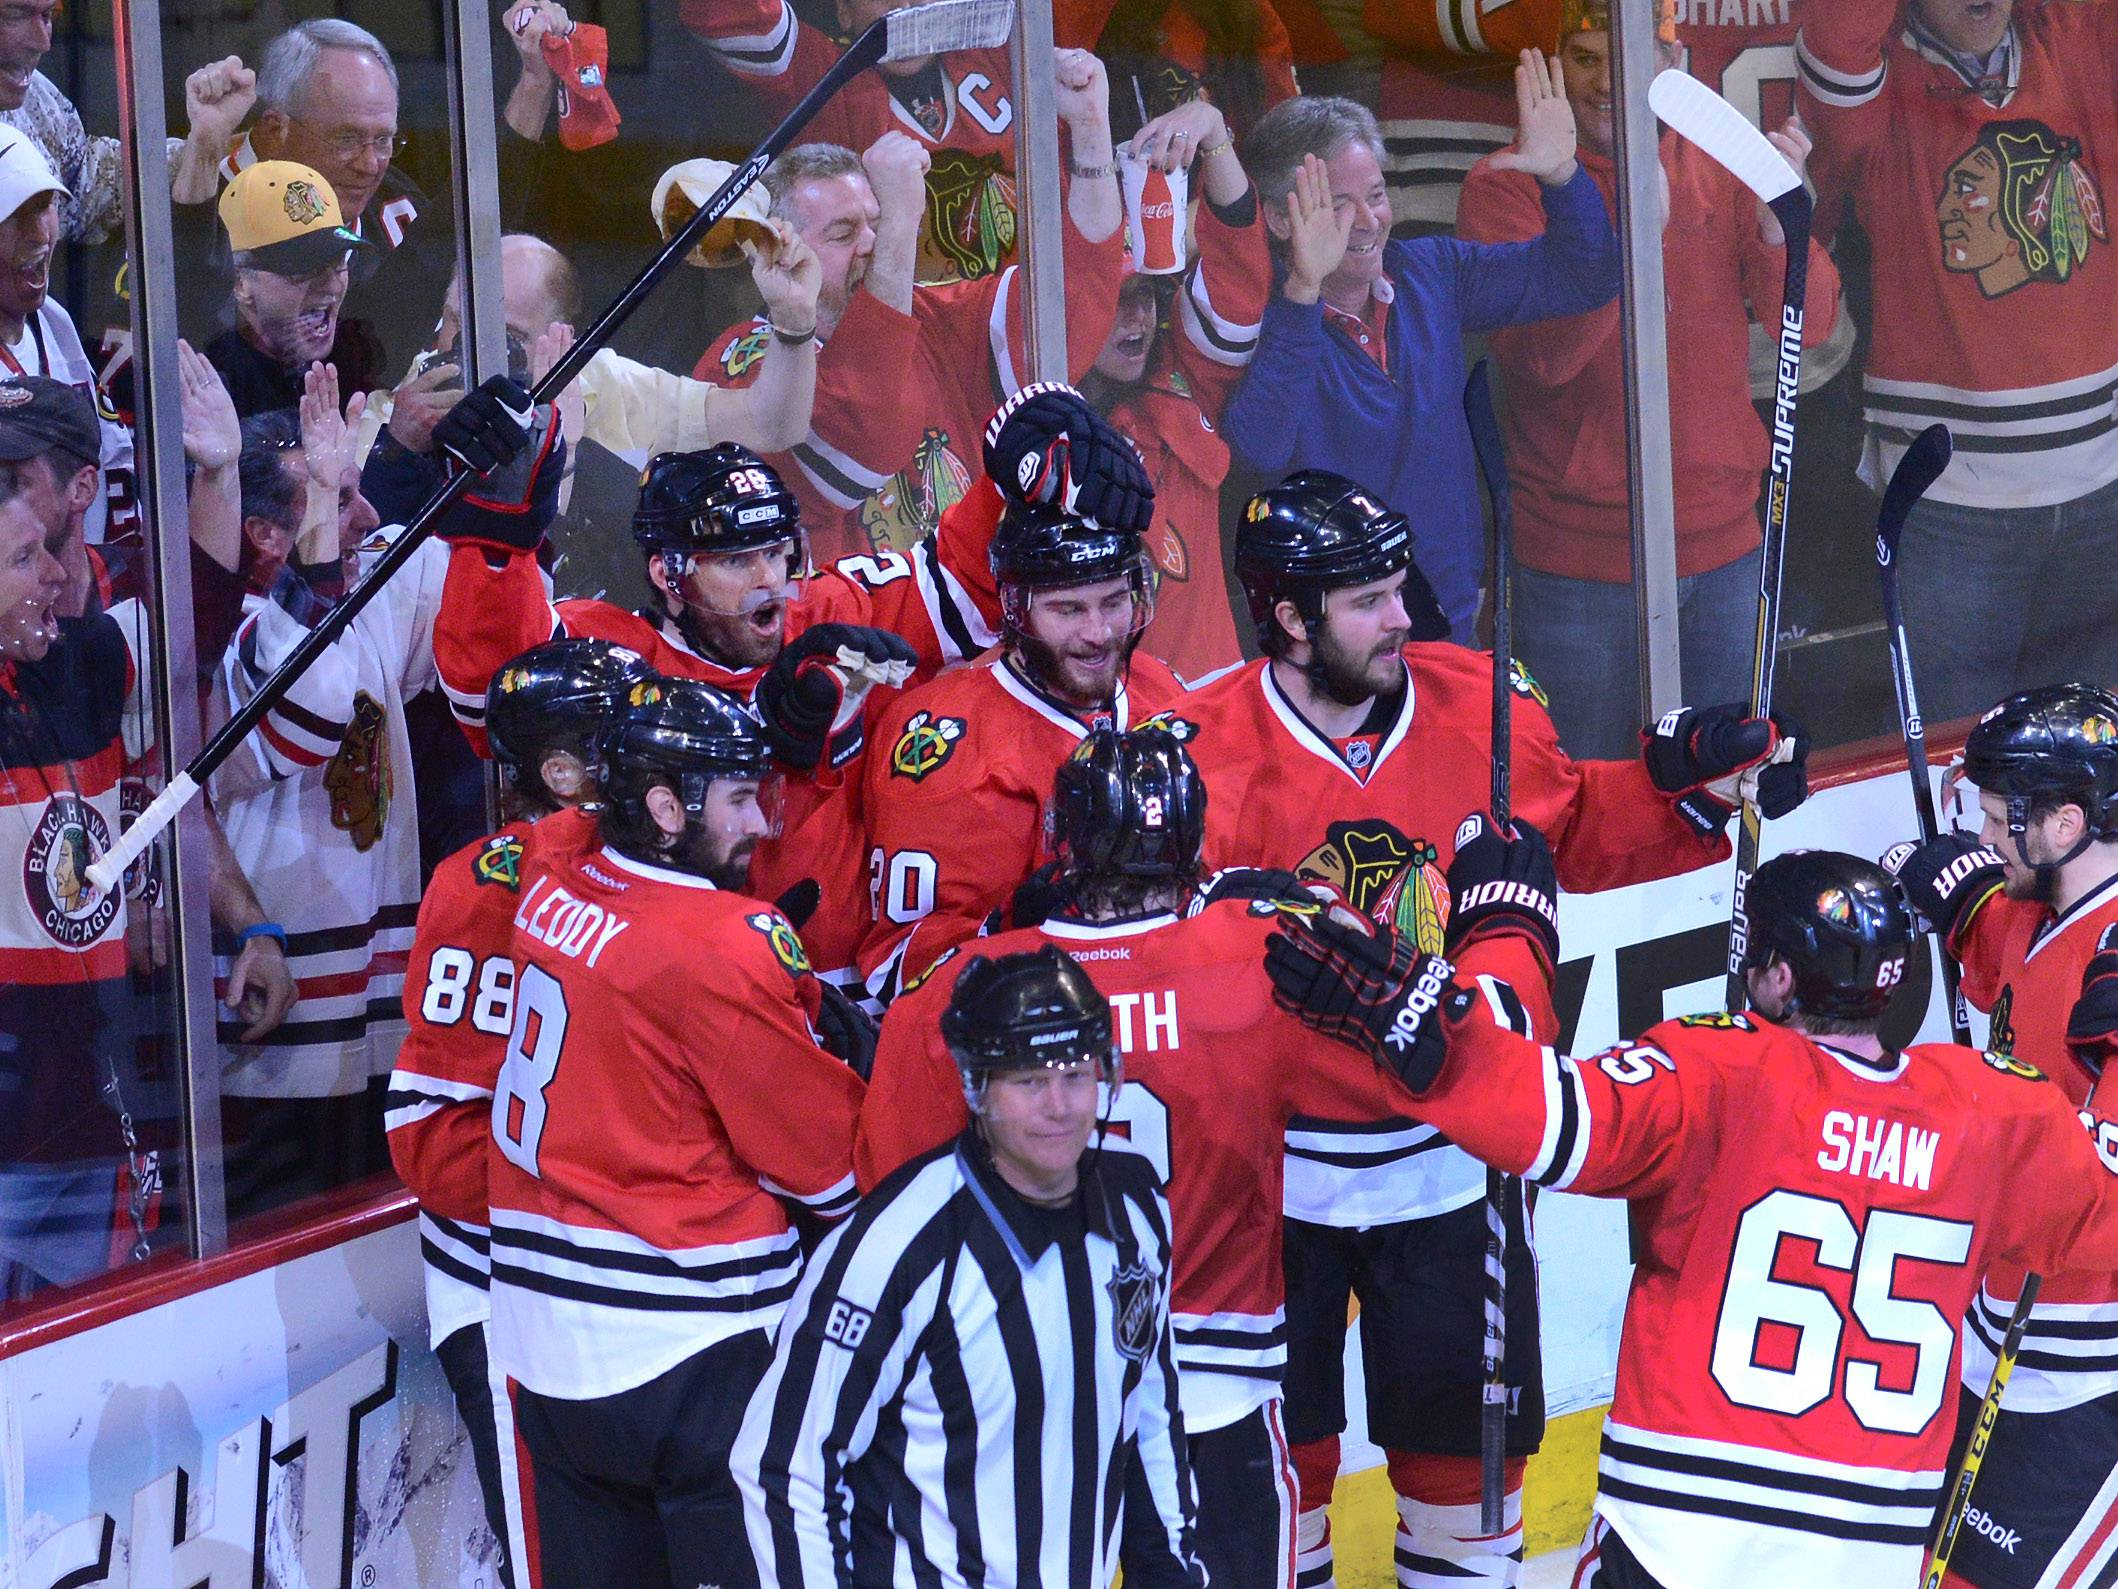 Great Zus! Hawks win 5-4 in double OT to stay alive